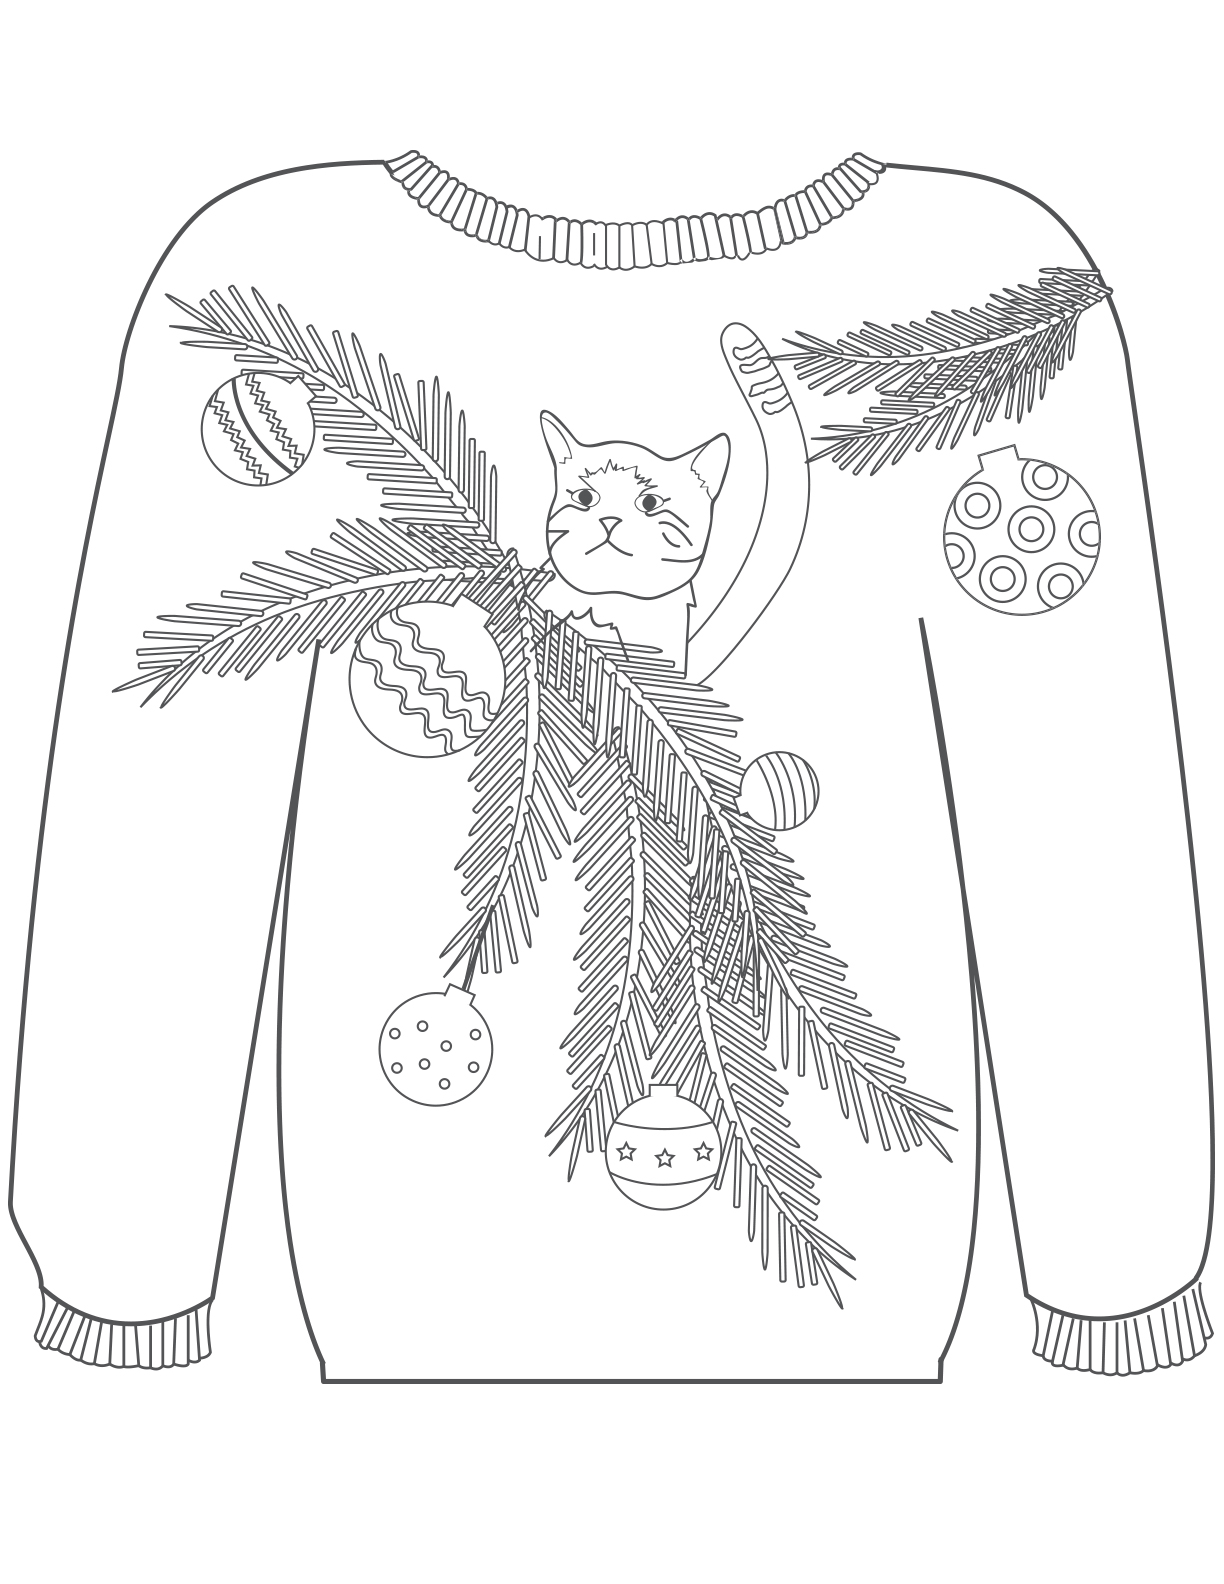 kitten in a tree sweater